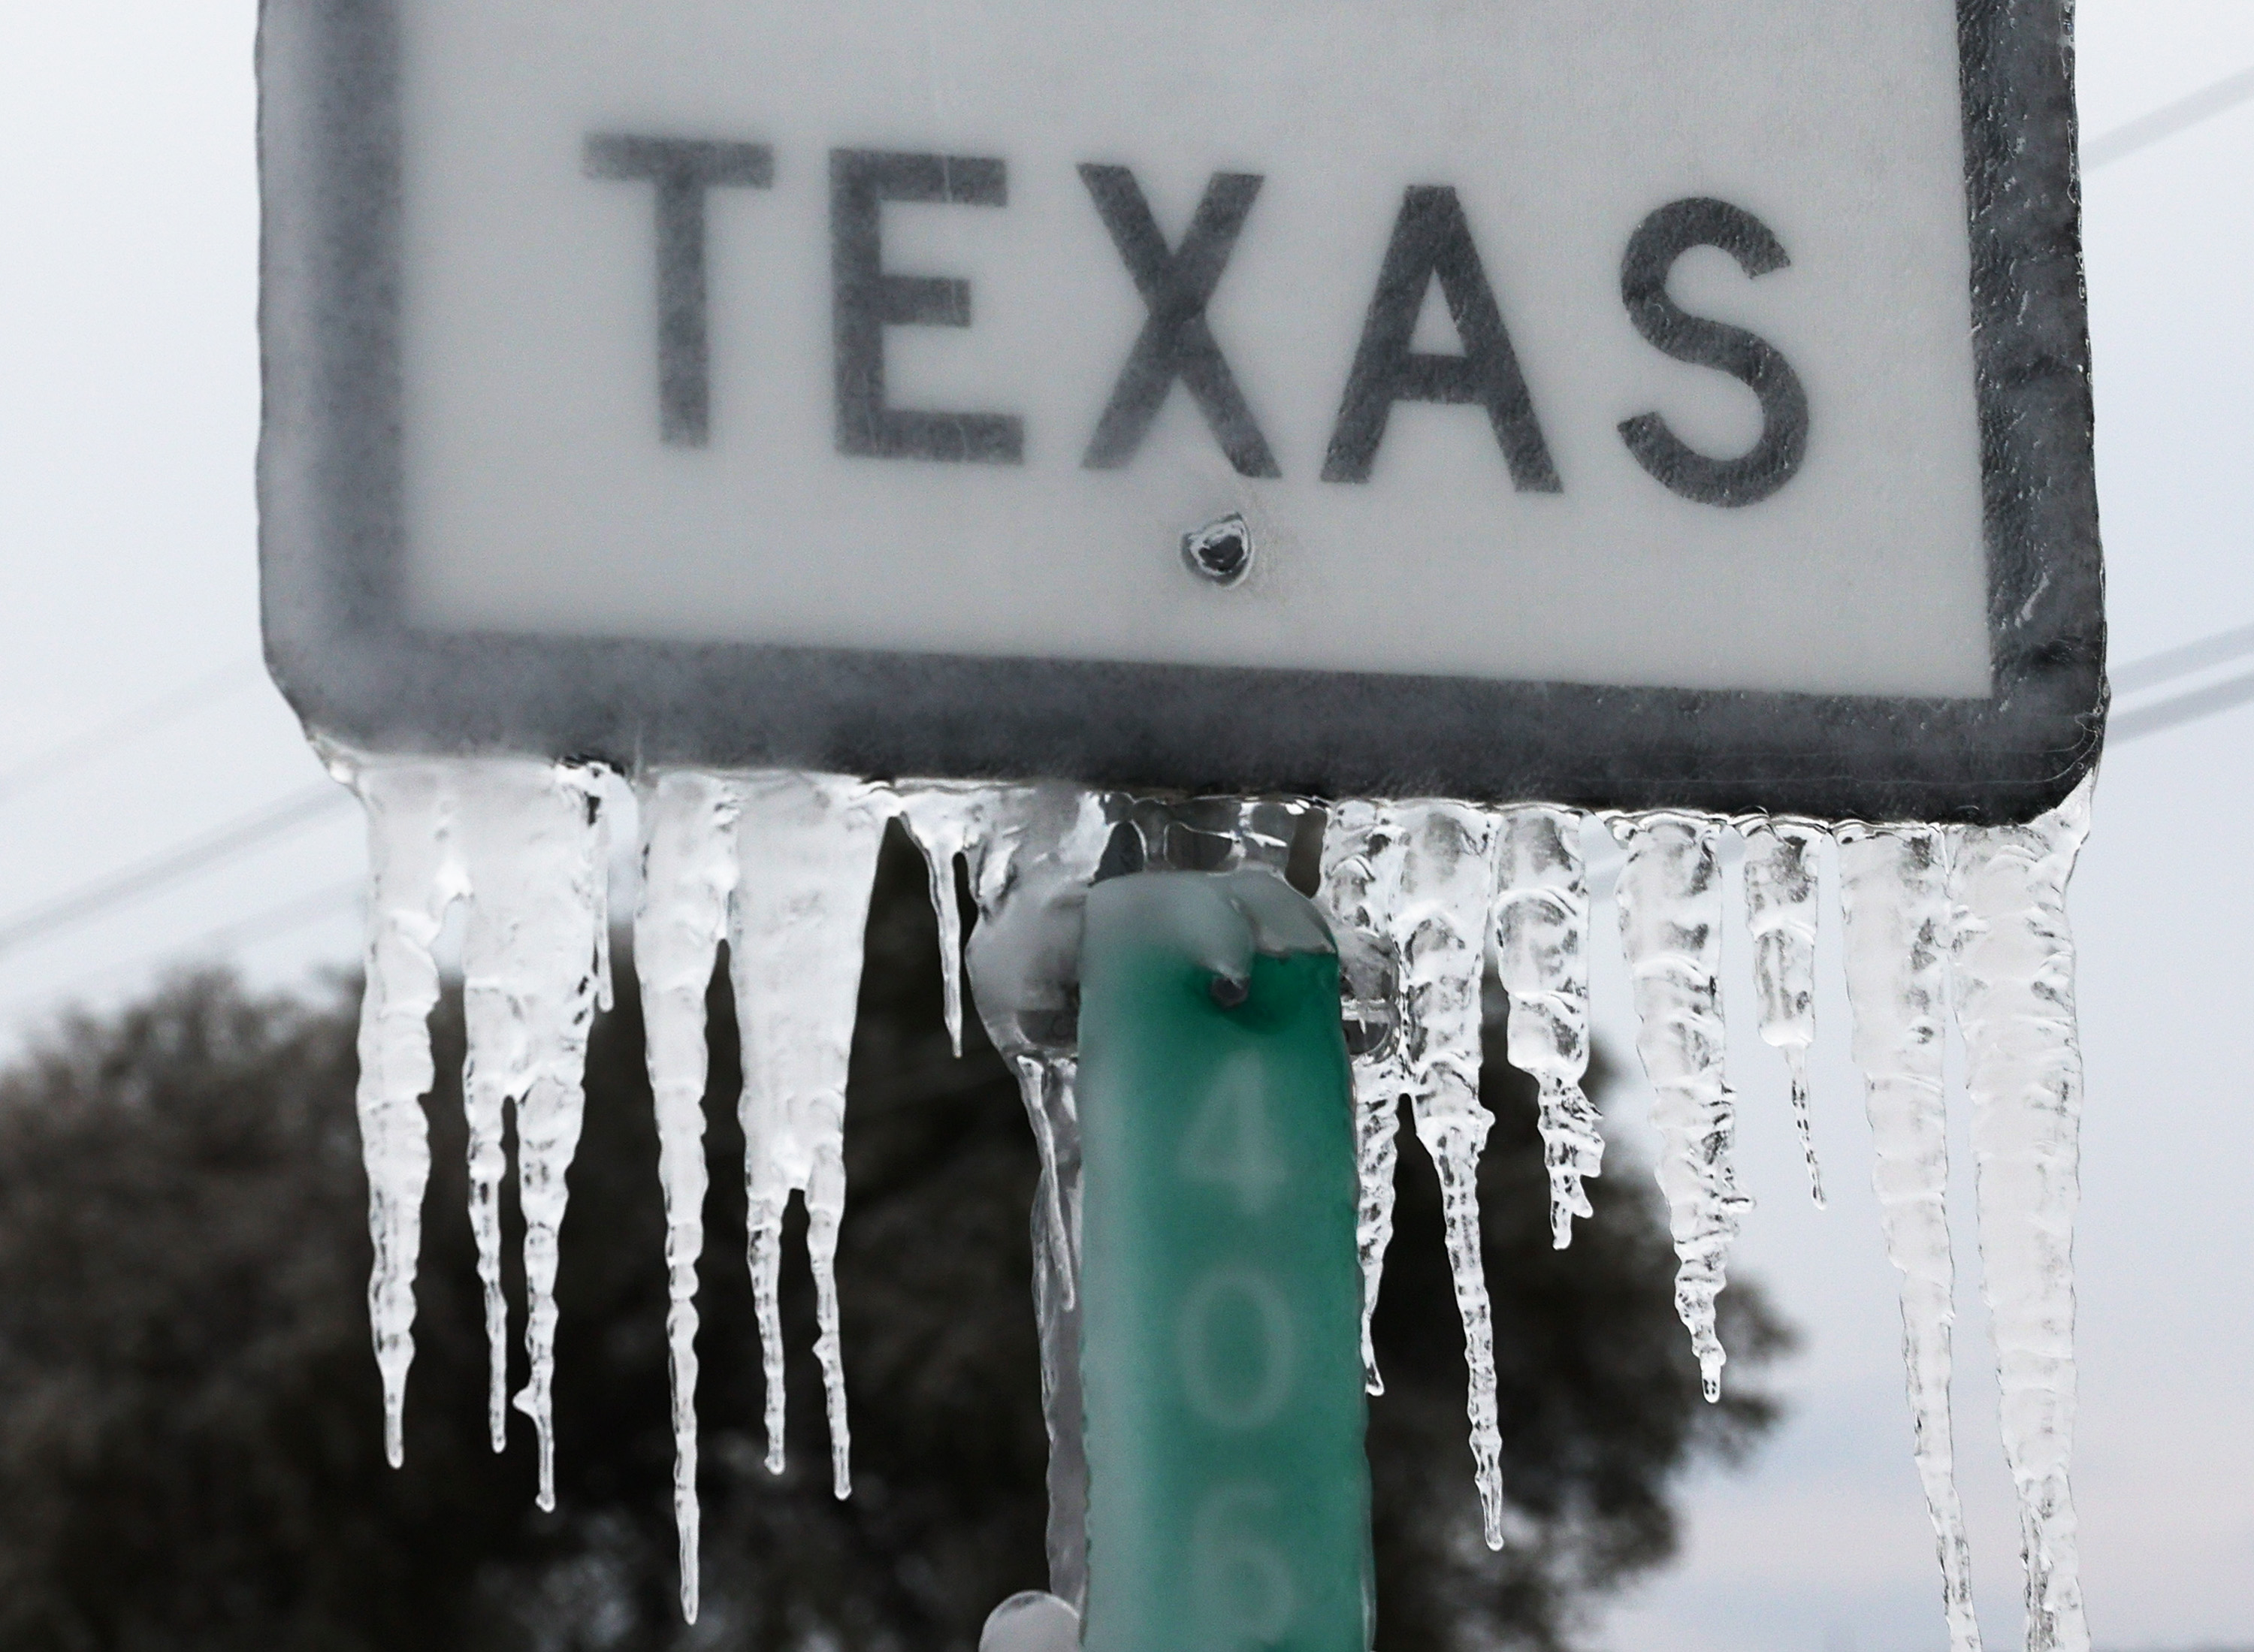 Suspected hypothermia deaths in homes mount in Texas | CW33 Dallas / Ft.  Worth